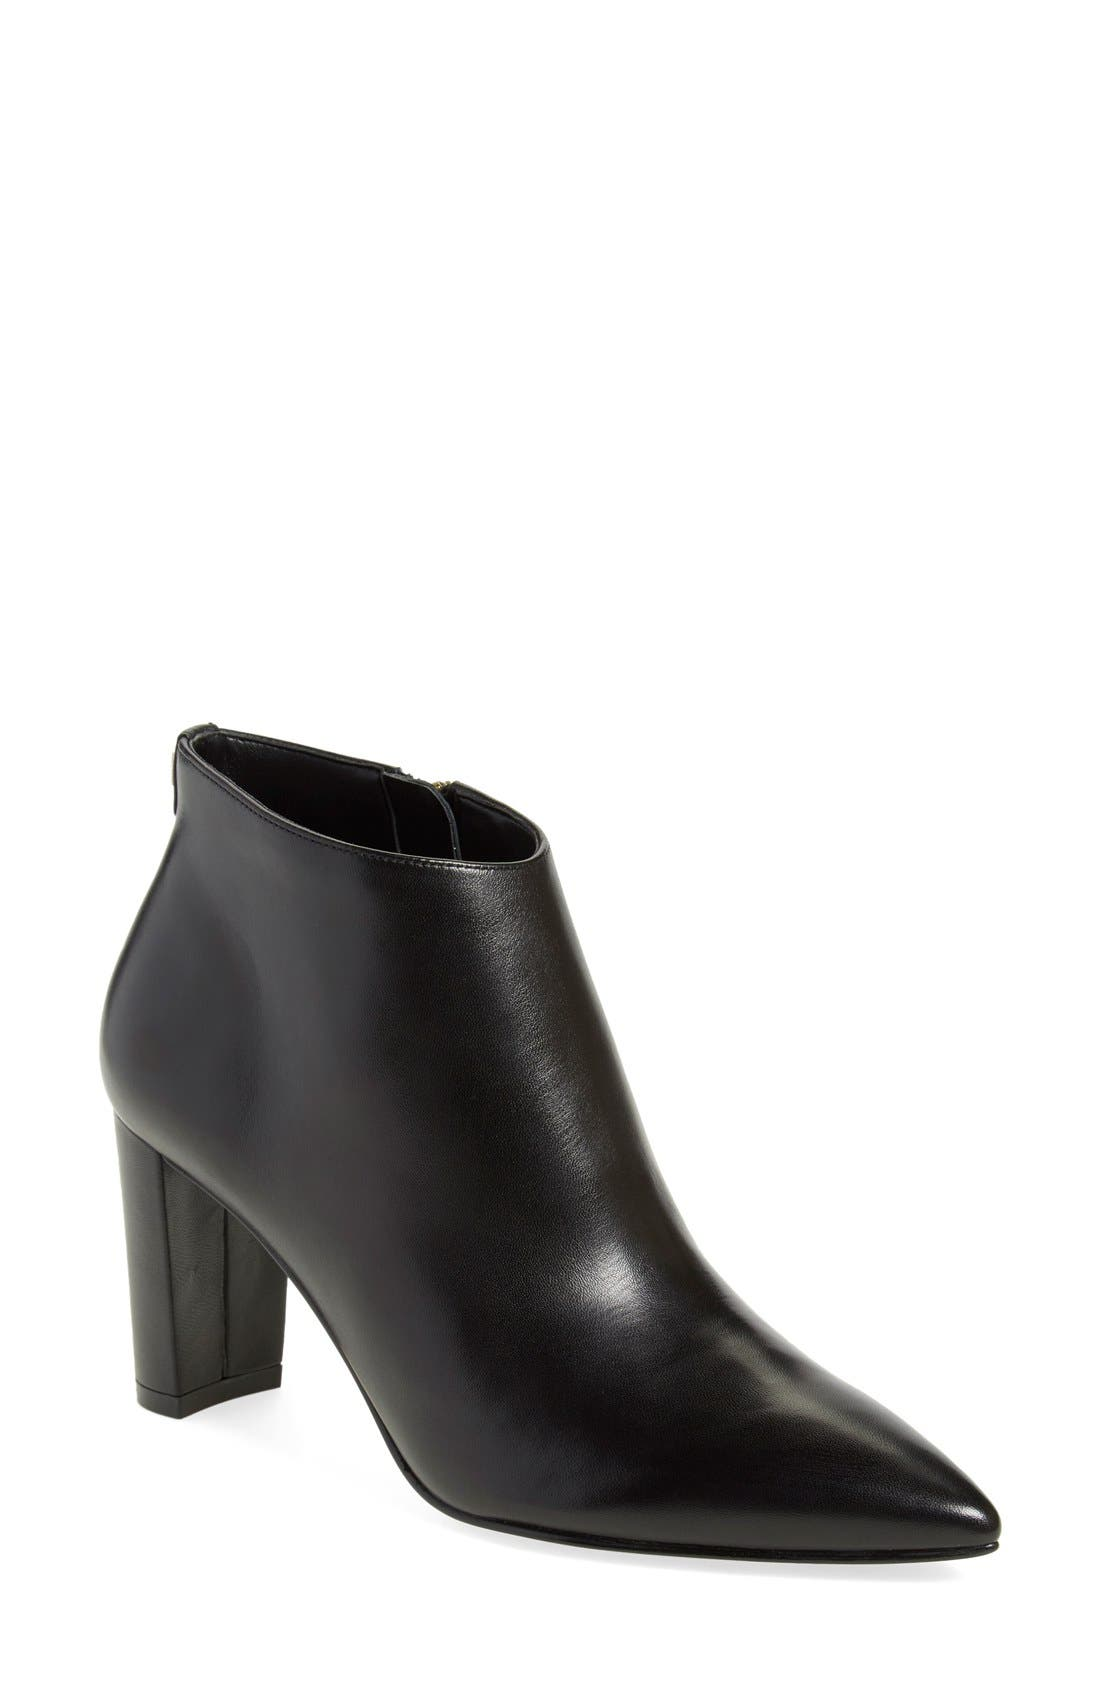 'Lettie' Pointy Toe Bootie,                             Main thumbnail 1, color,                             001